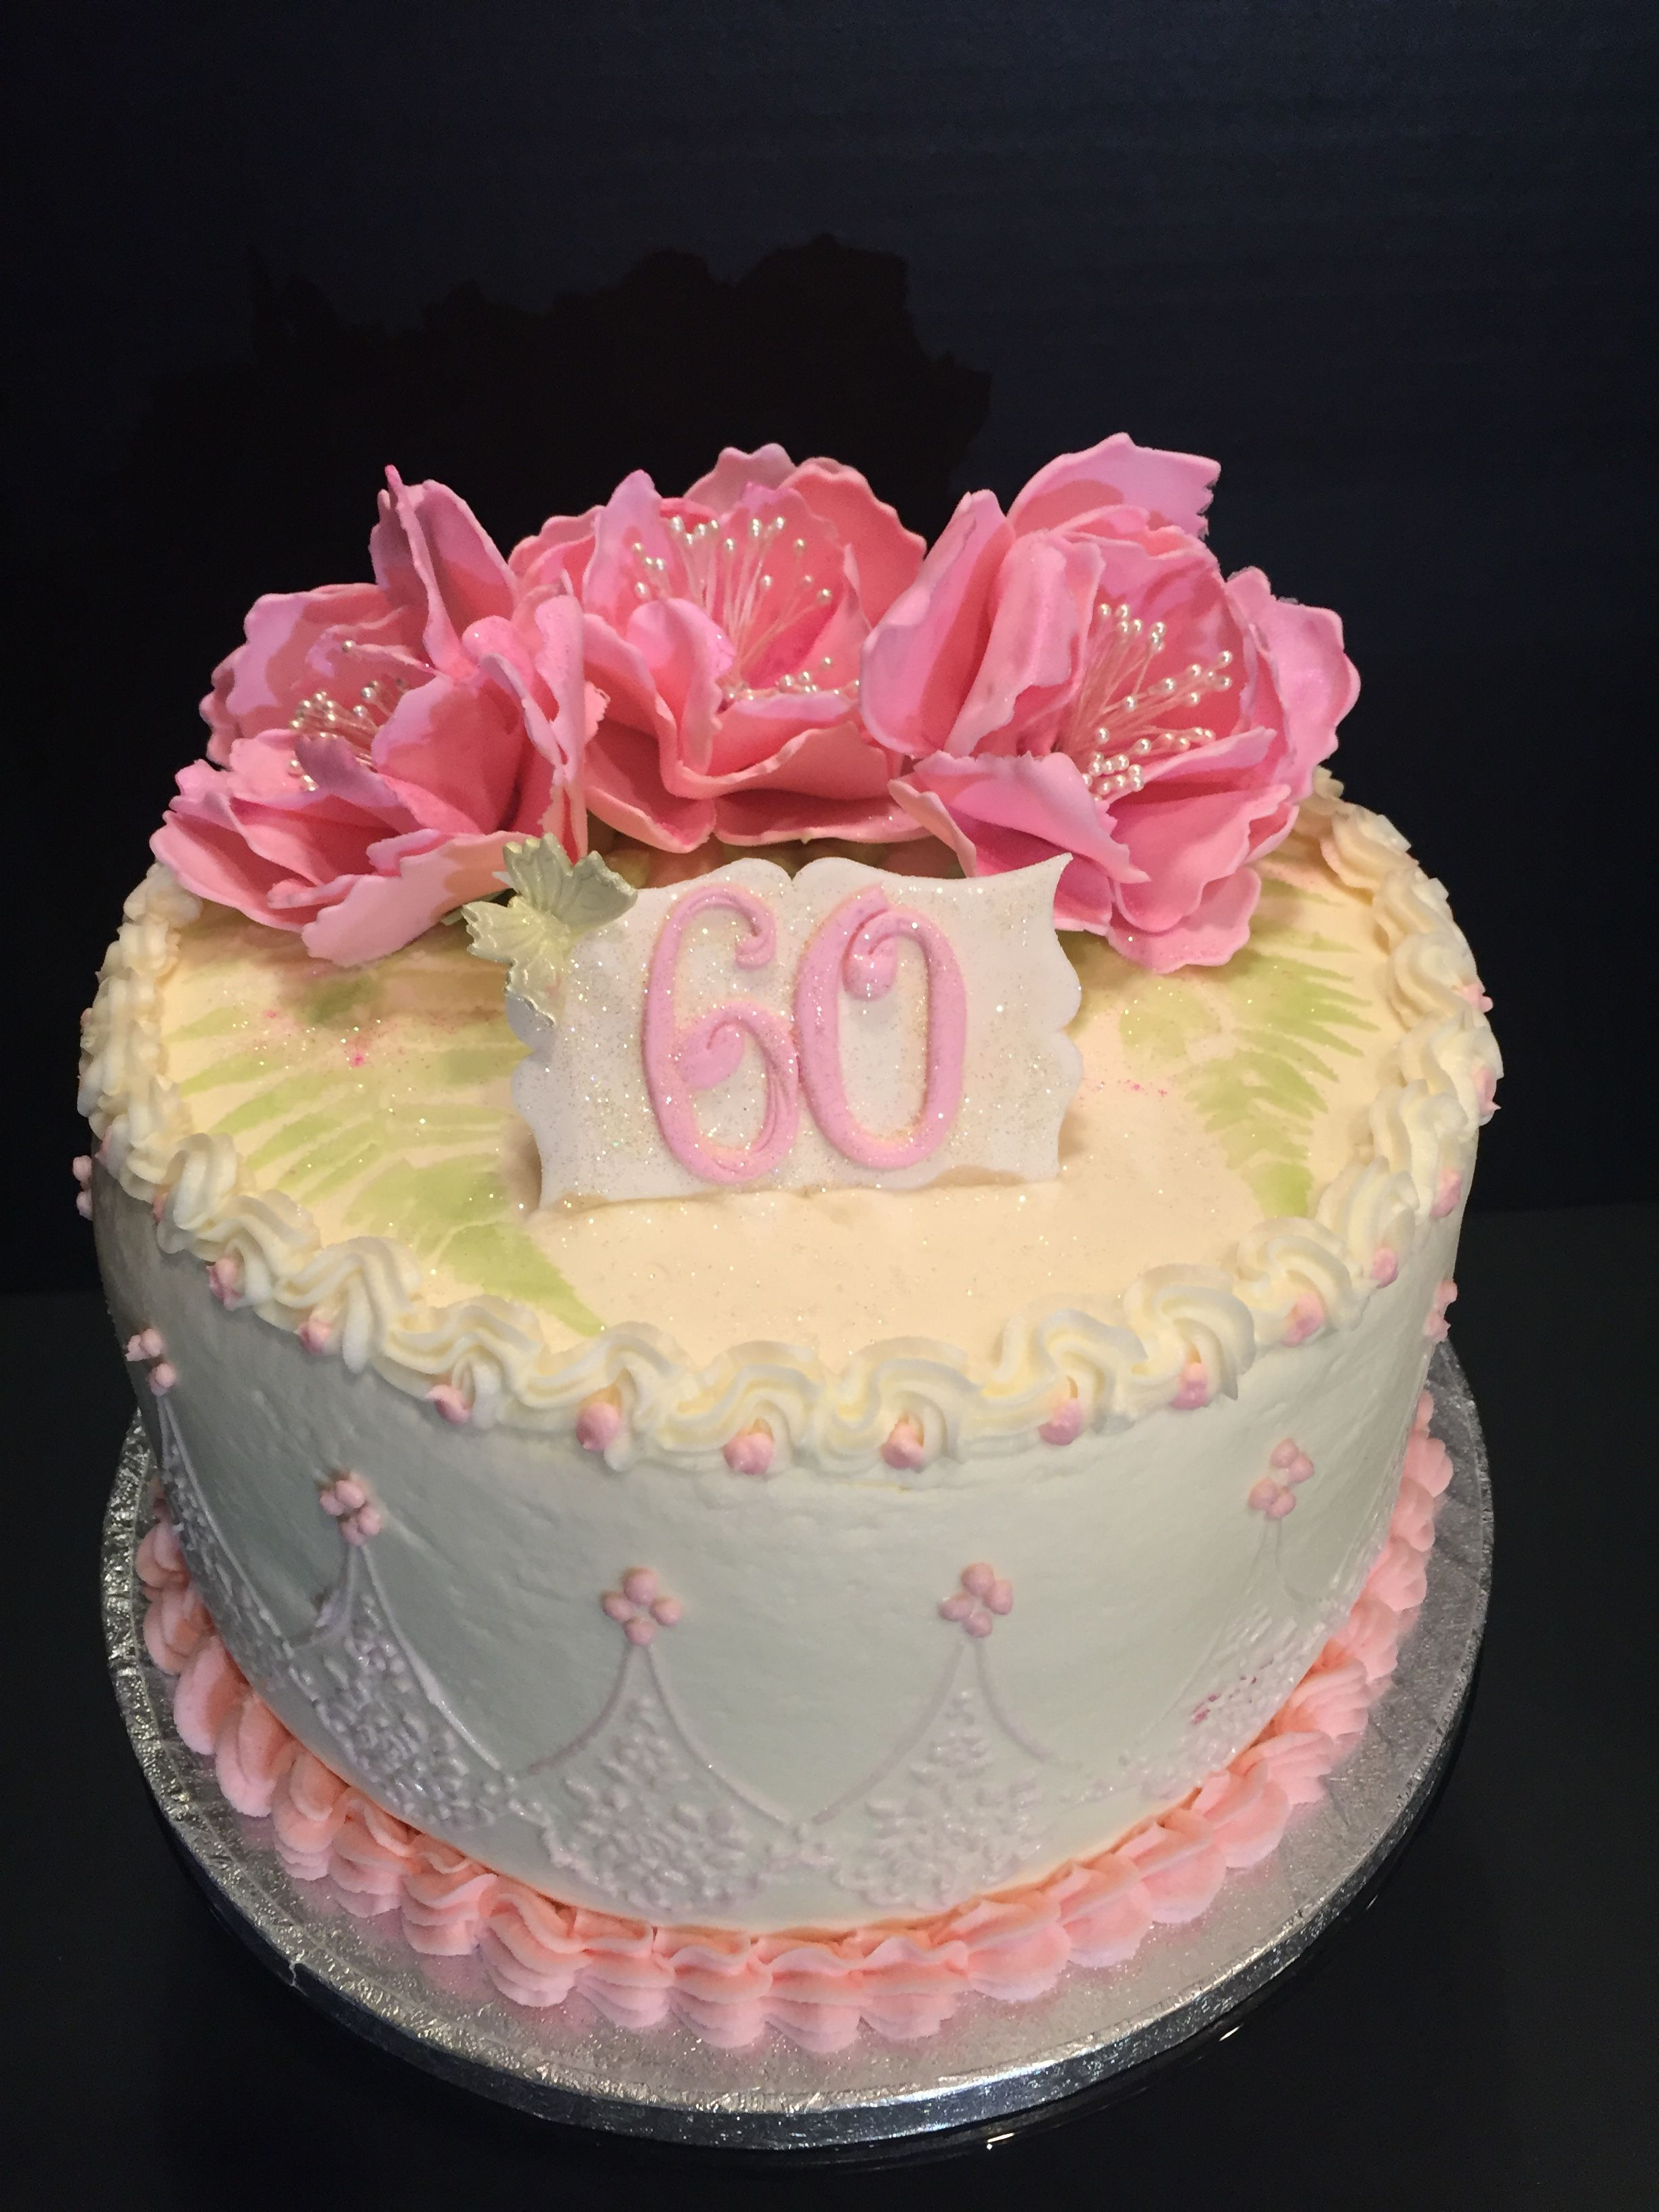 60th Birthday Cake With Handmade Flowers Cake Art Designs By Marie